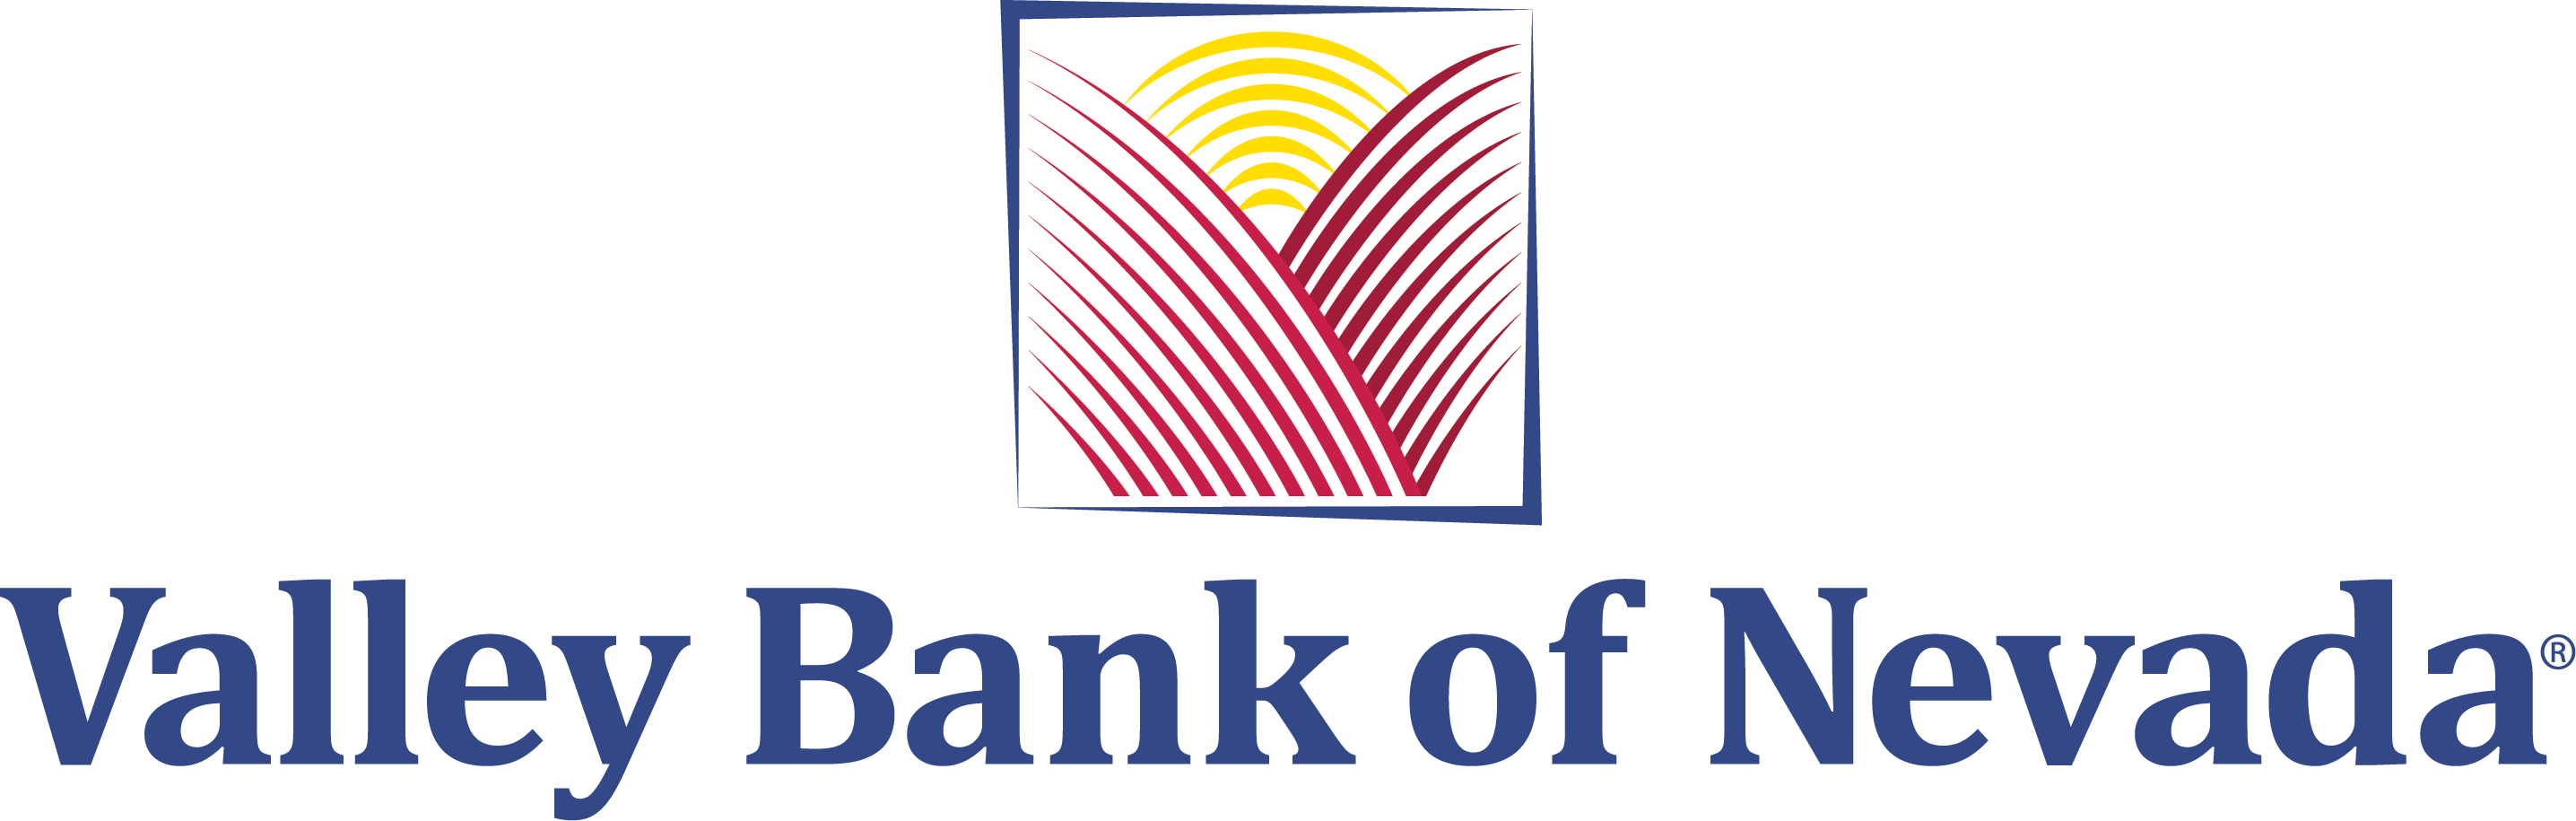 Valley Bank of Nevada Logo